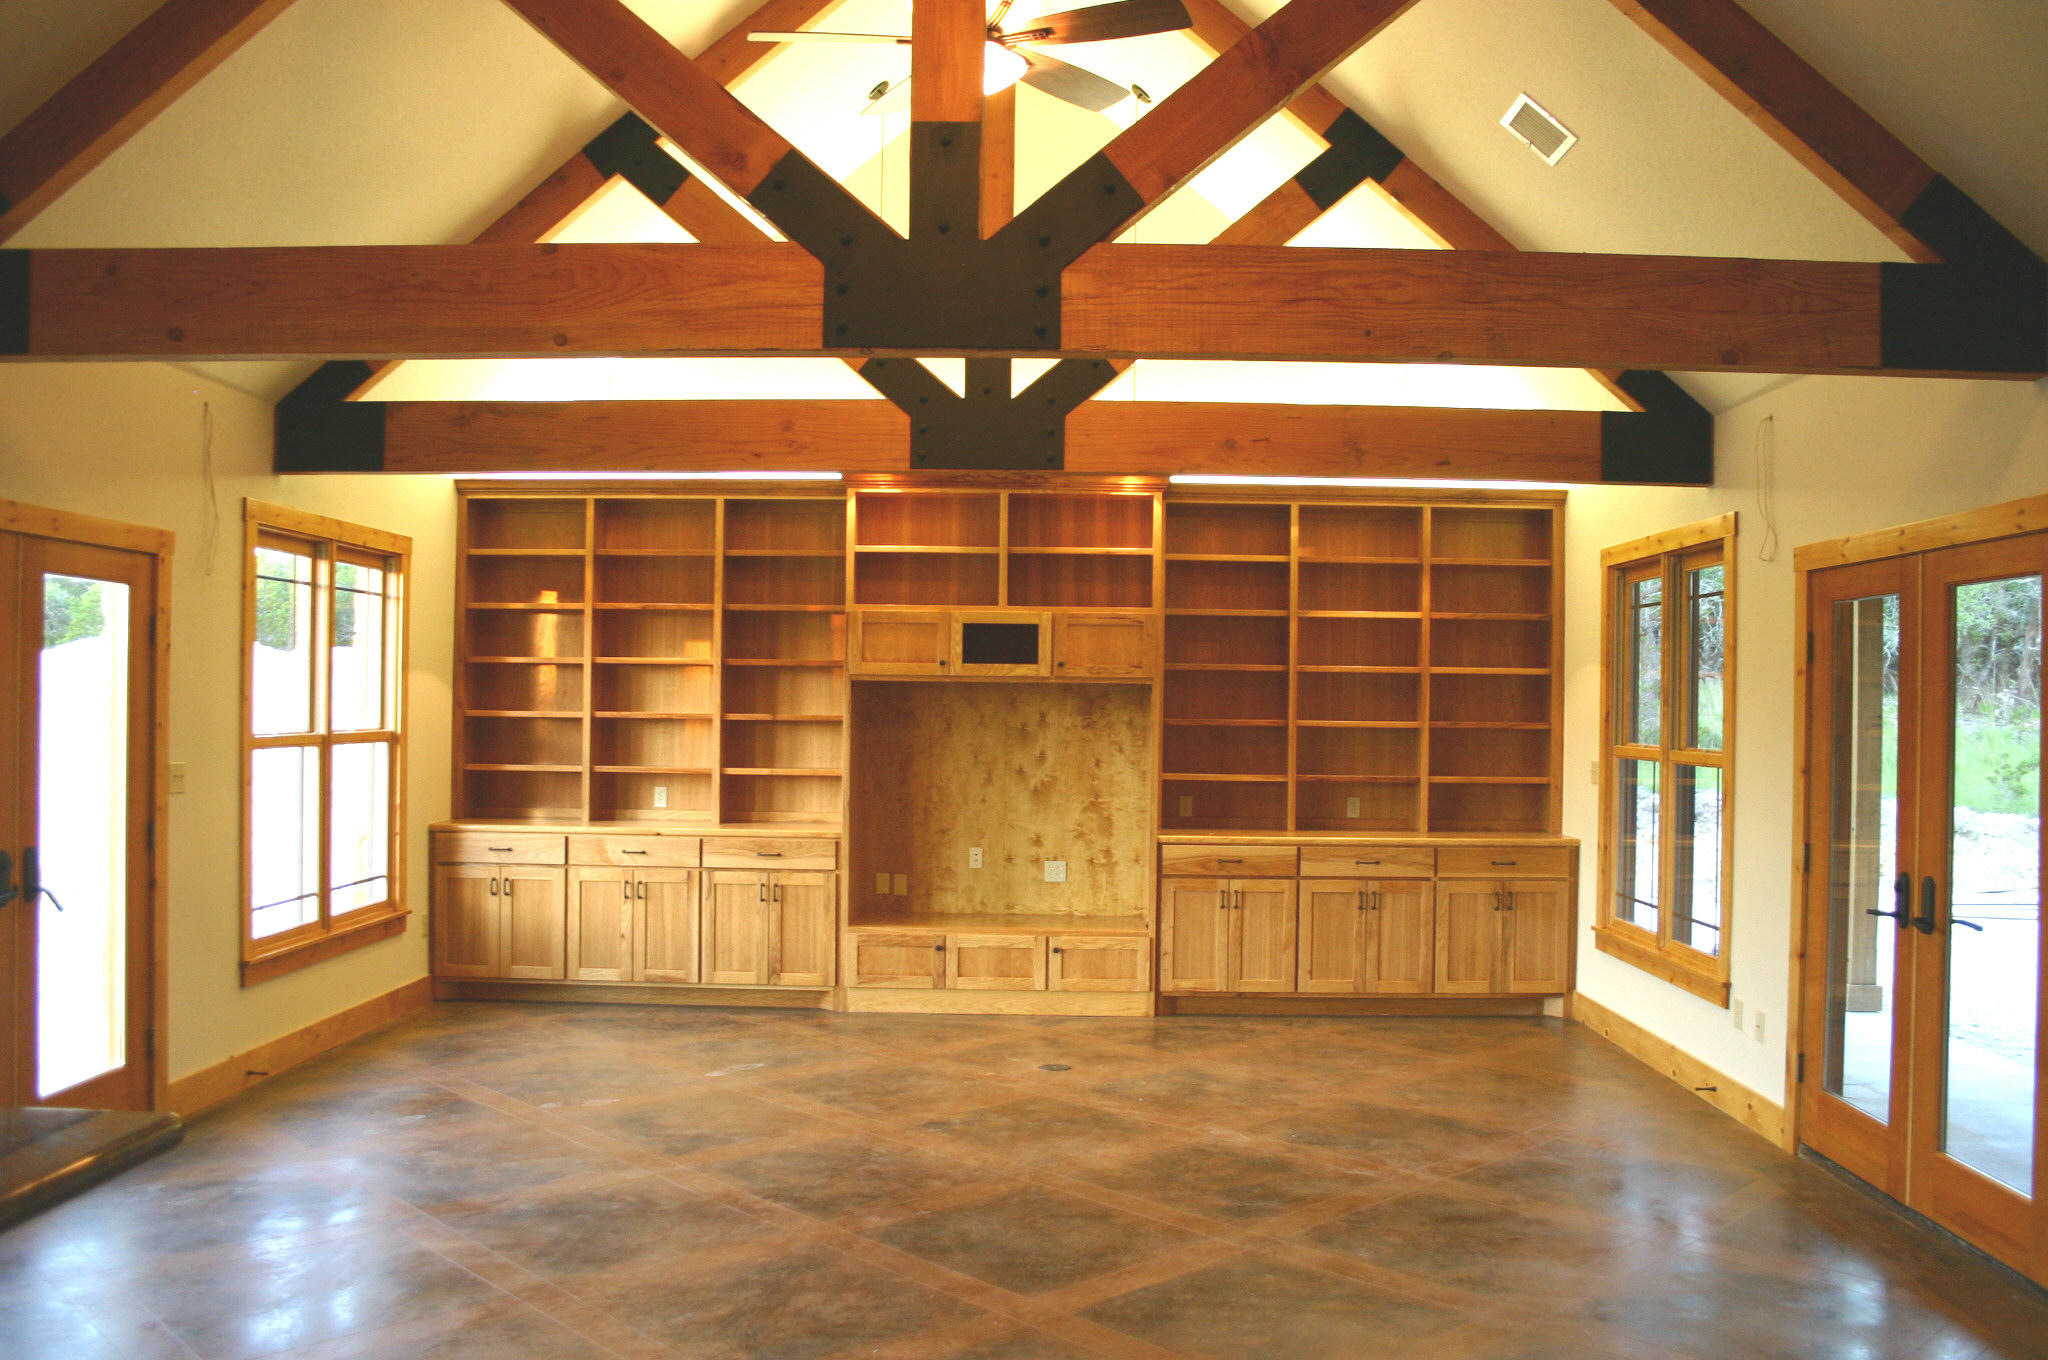 Texas hill country ranches texas hill country floors in for Hill country flooring